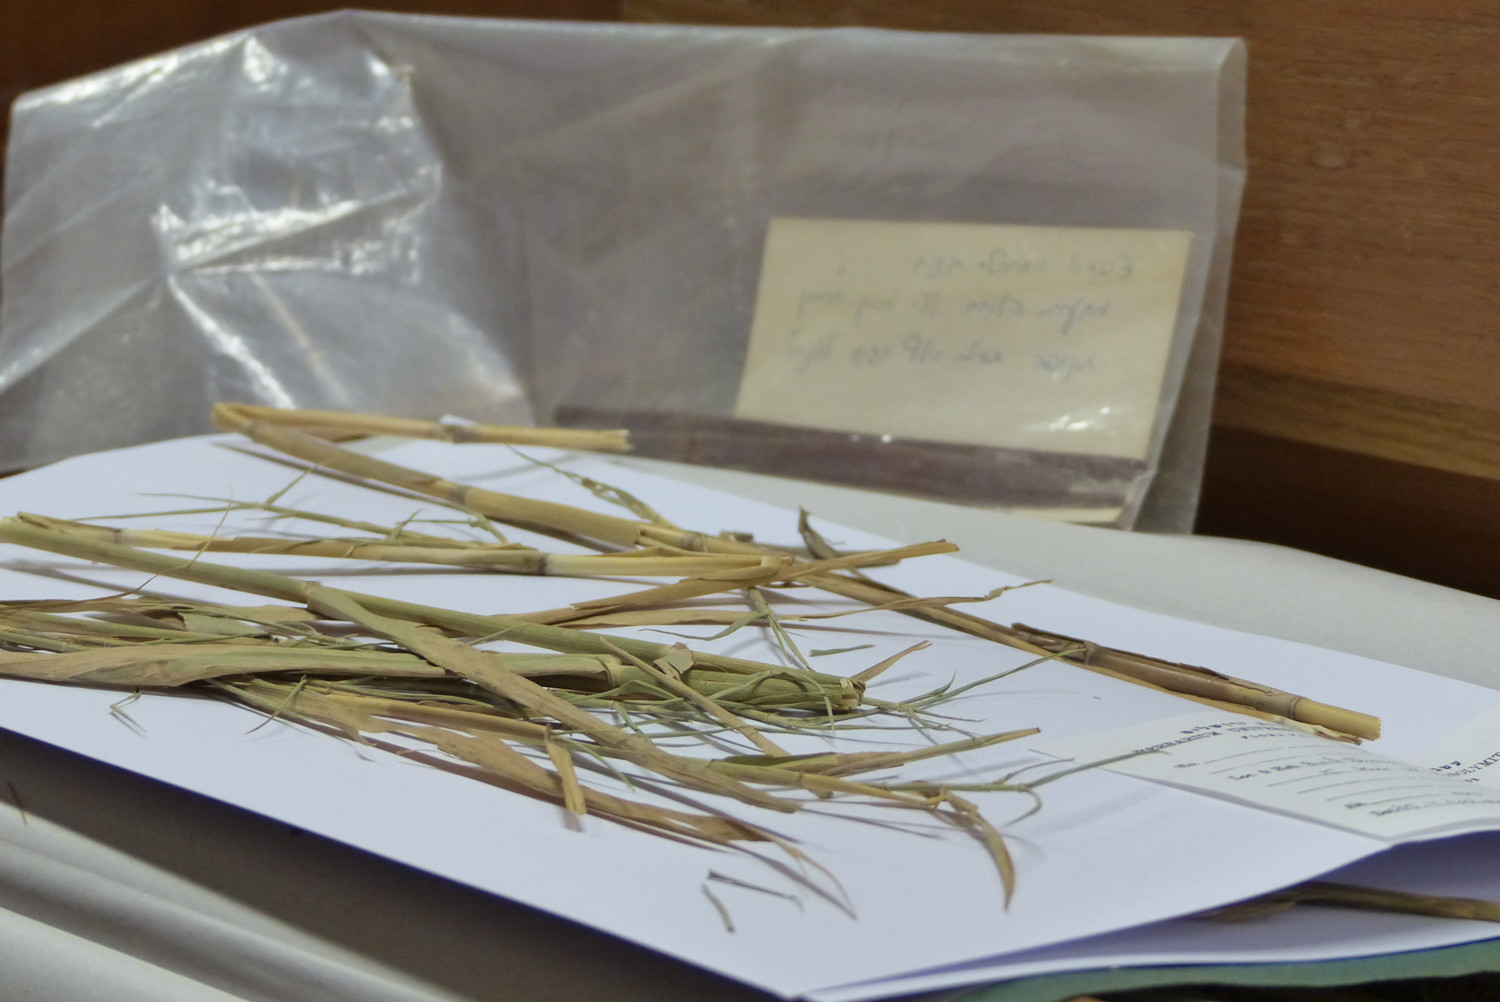 These 6,000-year-old phragmites were found in a burial cave in Wadi el-Makkukh in the Judean desert.